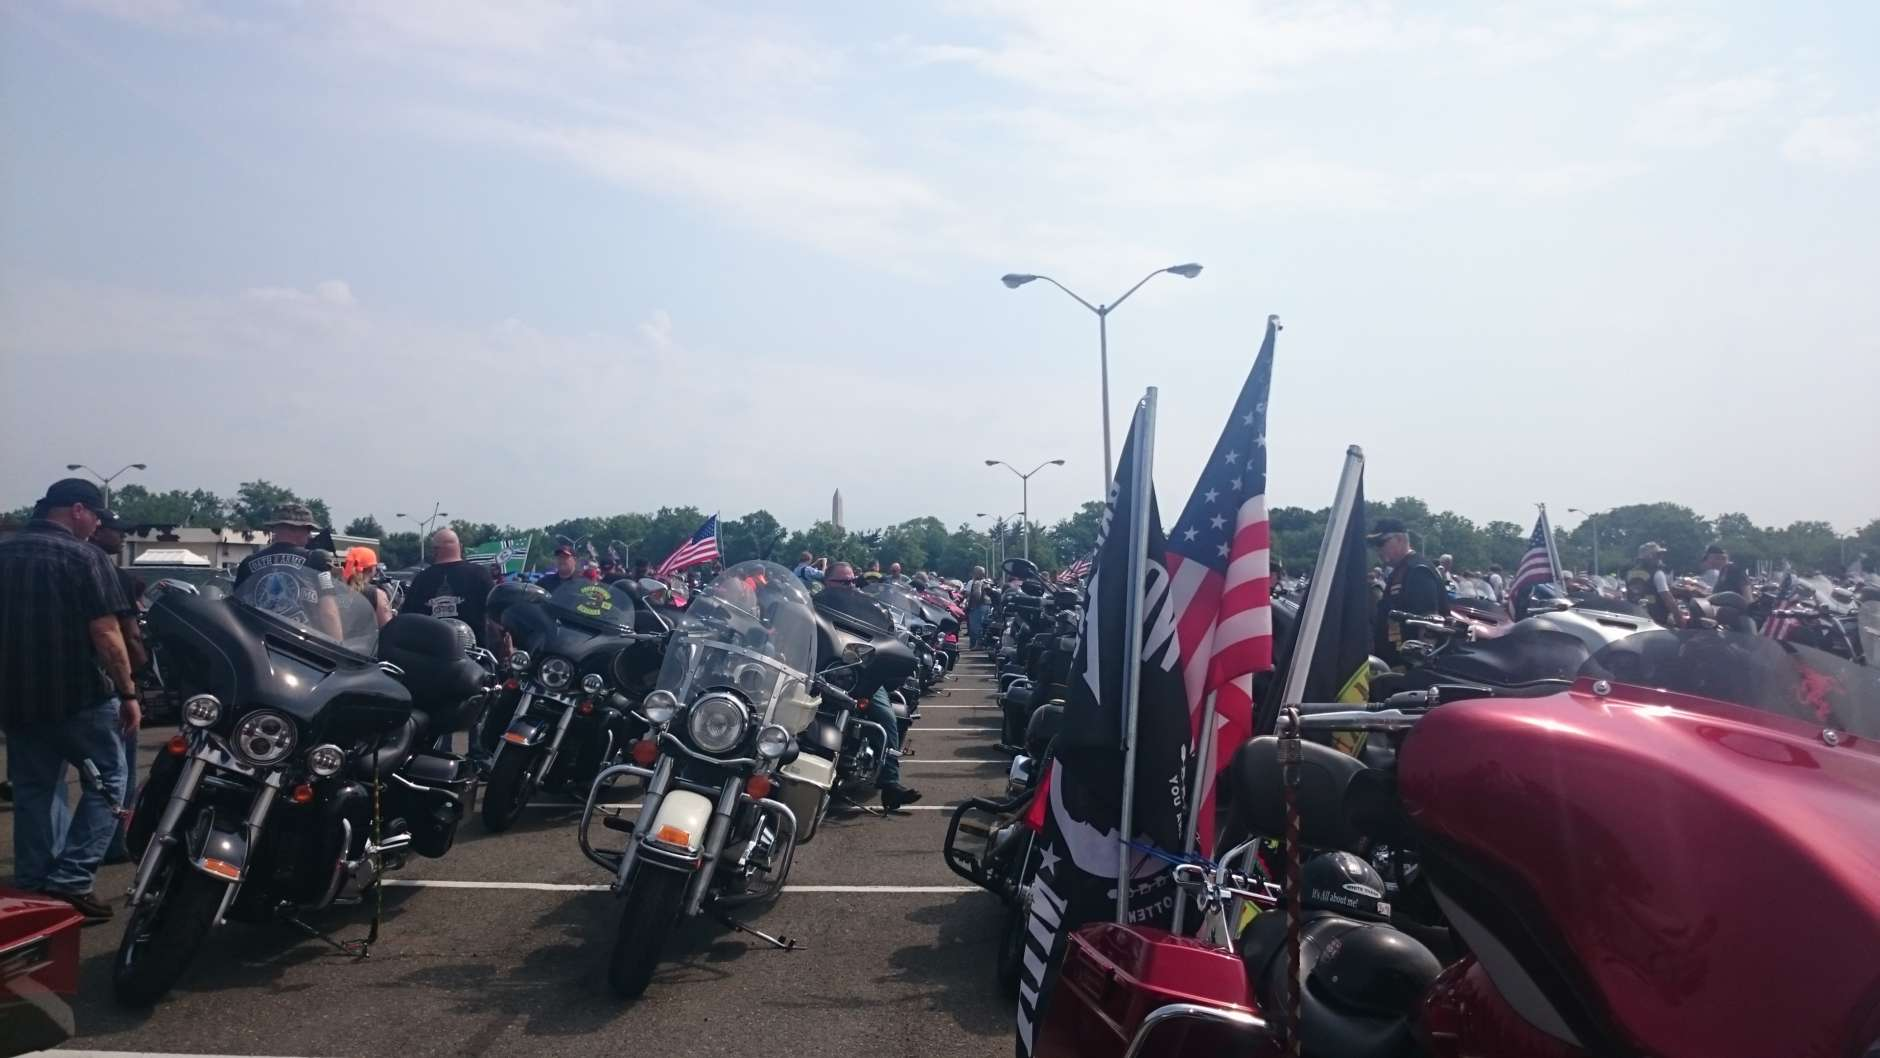 Thousands mounted their motorcycles this weekend for the annueal Rolling Thunder event. (WTOP/Dennis Foley)